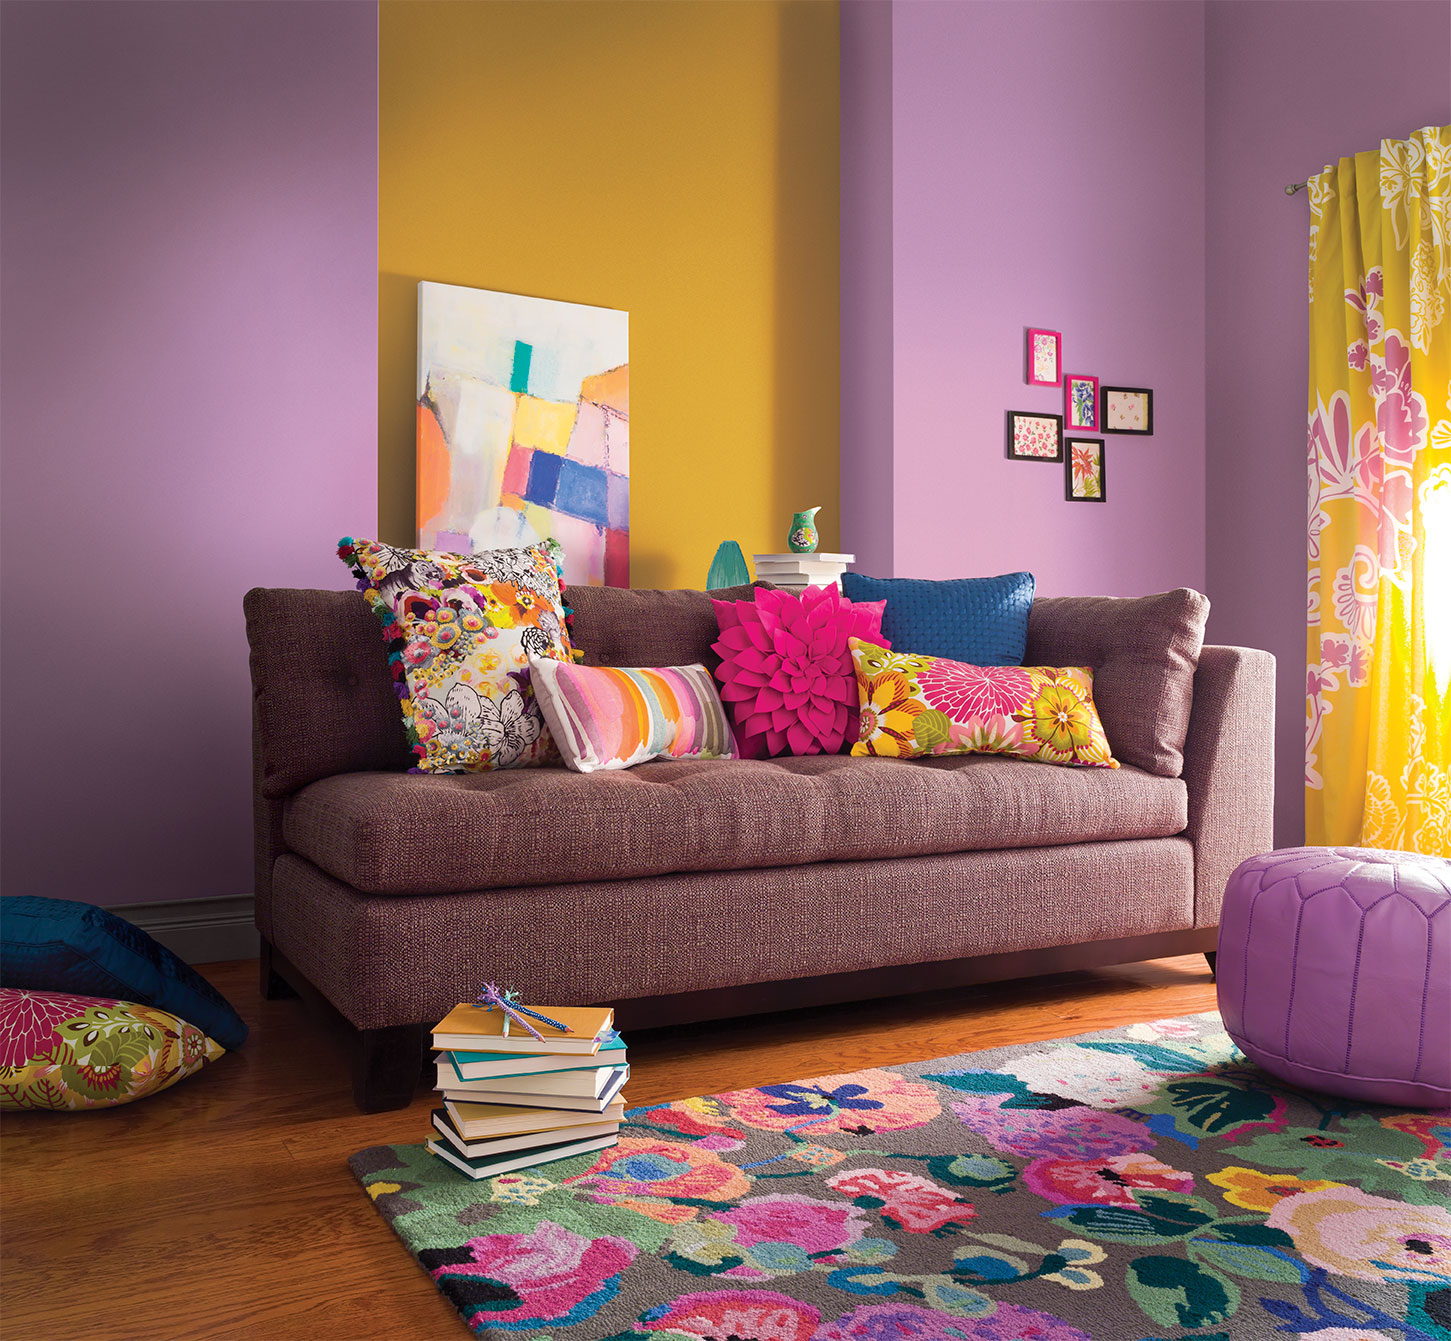 TRG Image of brightly colored couch.